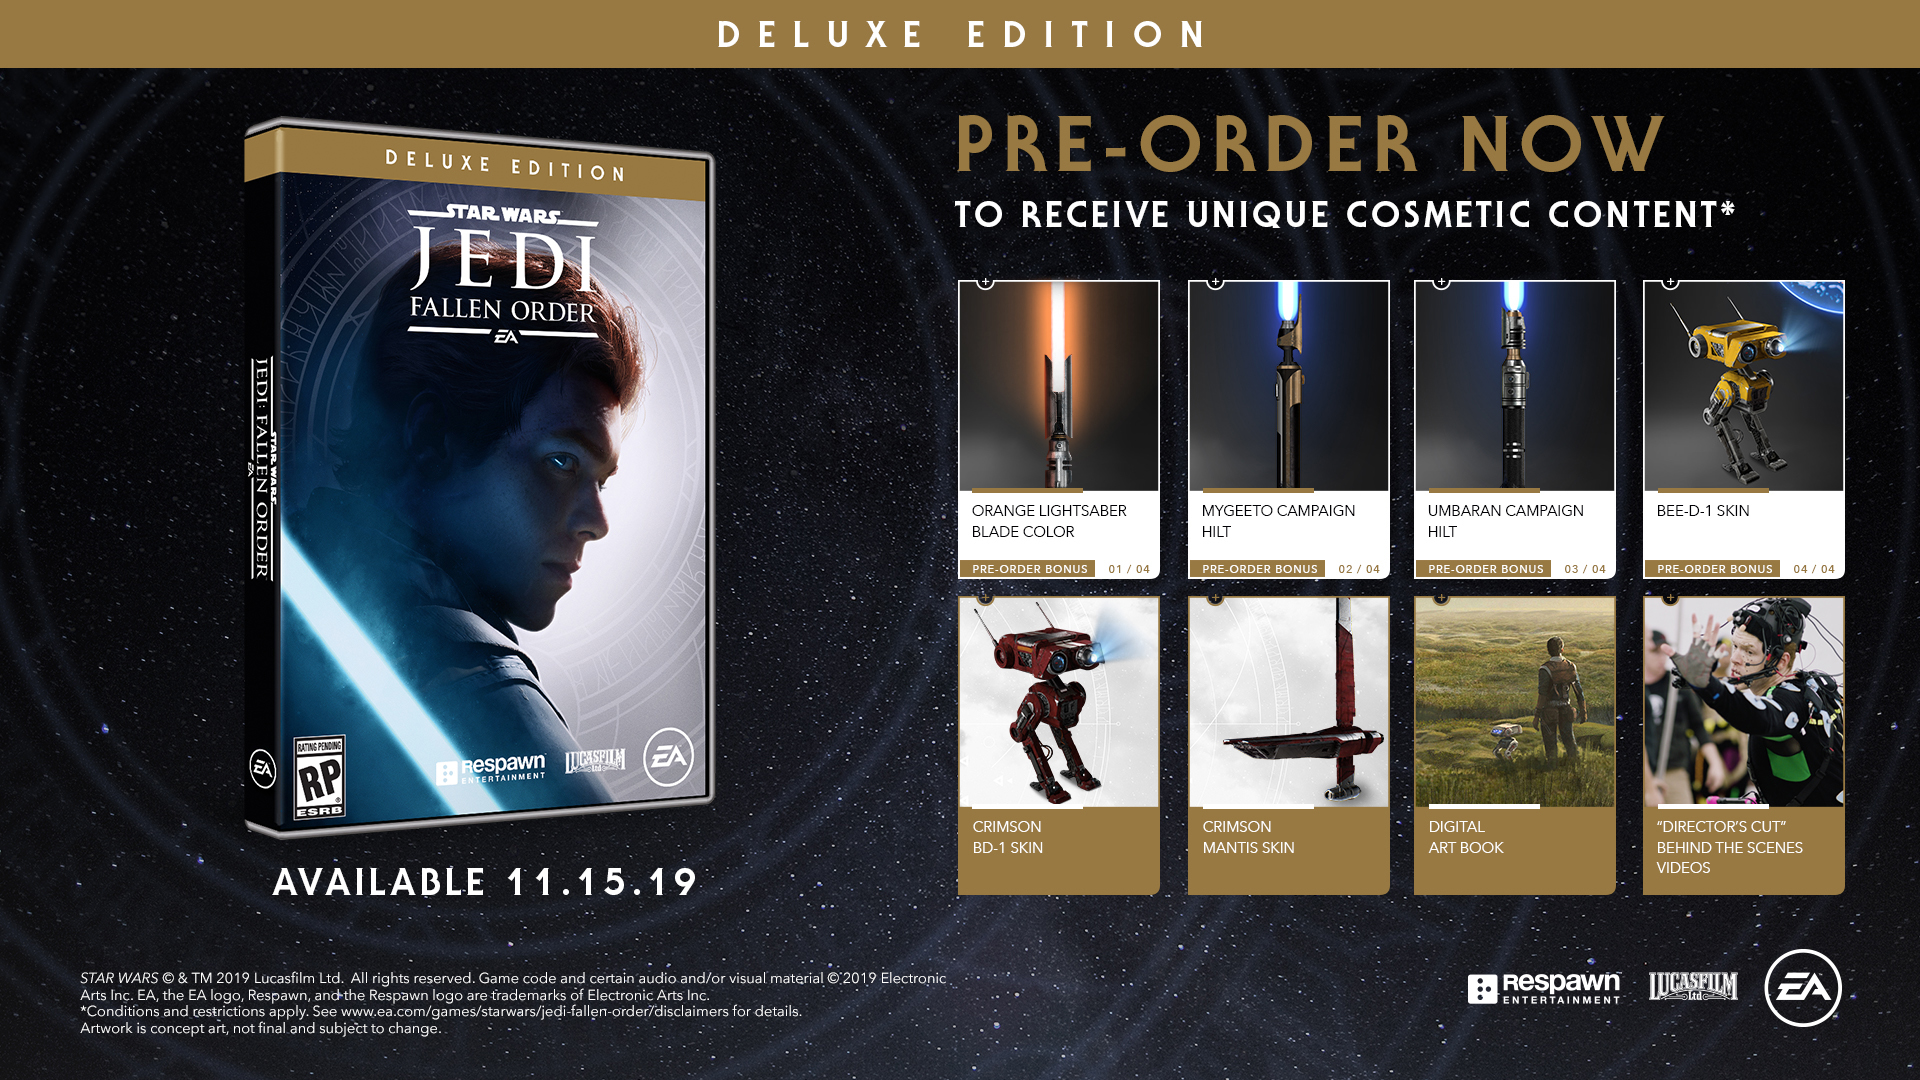 Here S What You Get With The Deluxe Edition Of Star Wars Jedi Fallen Order Jedi News